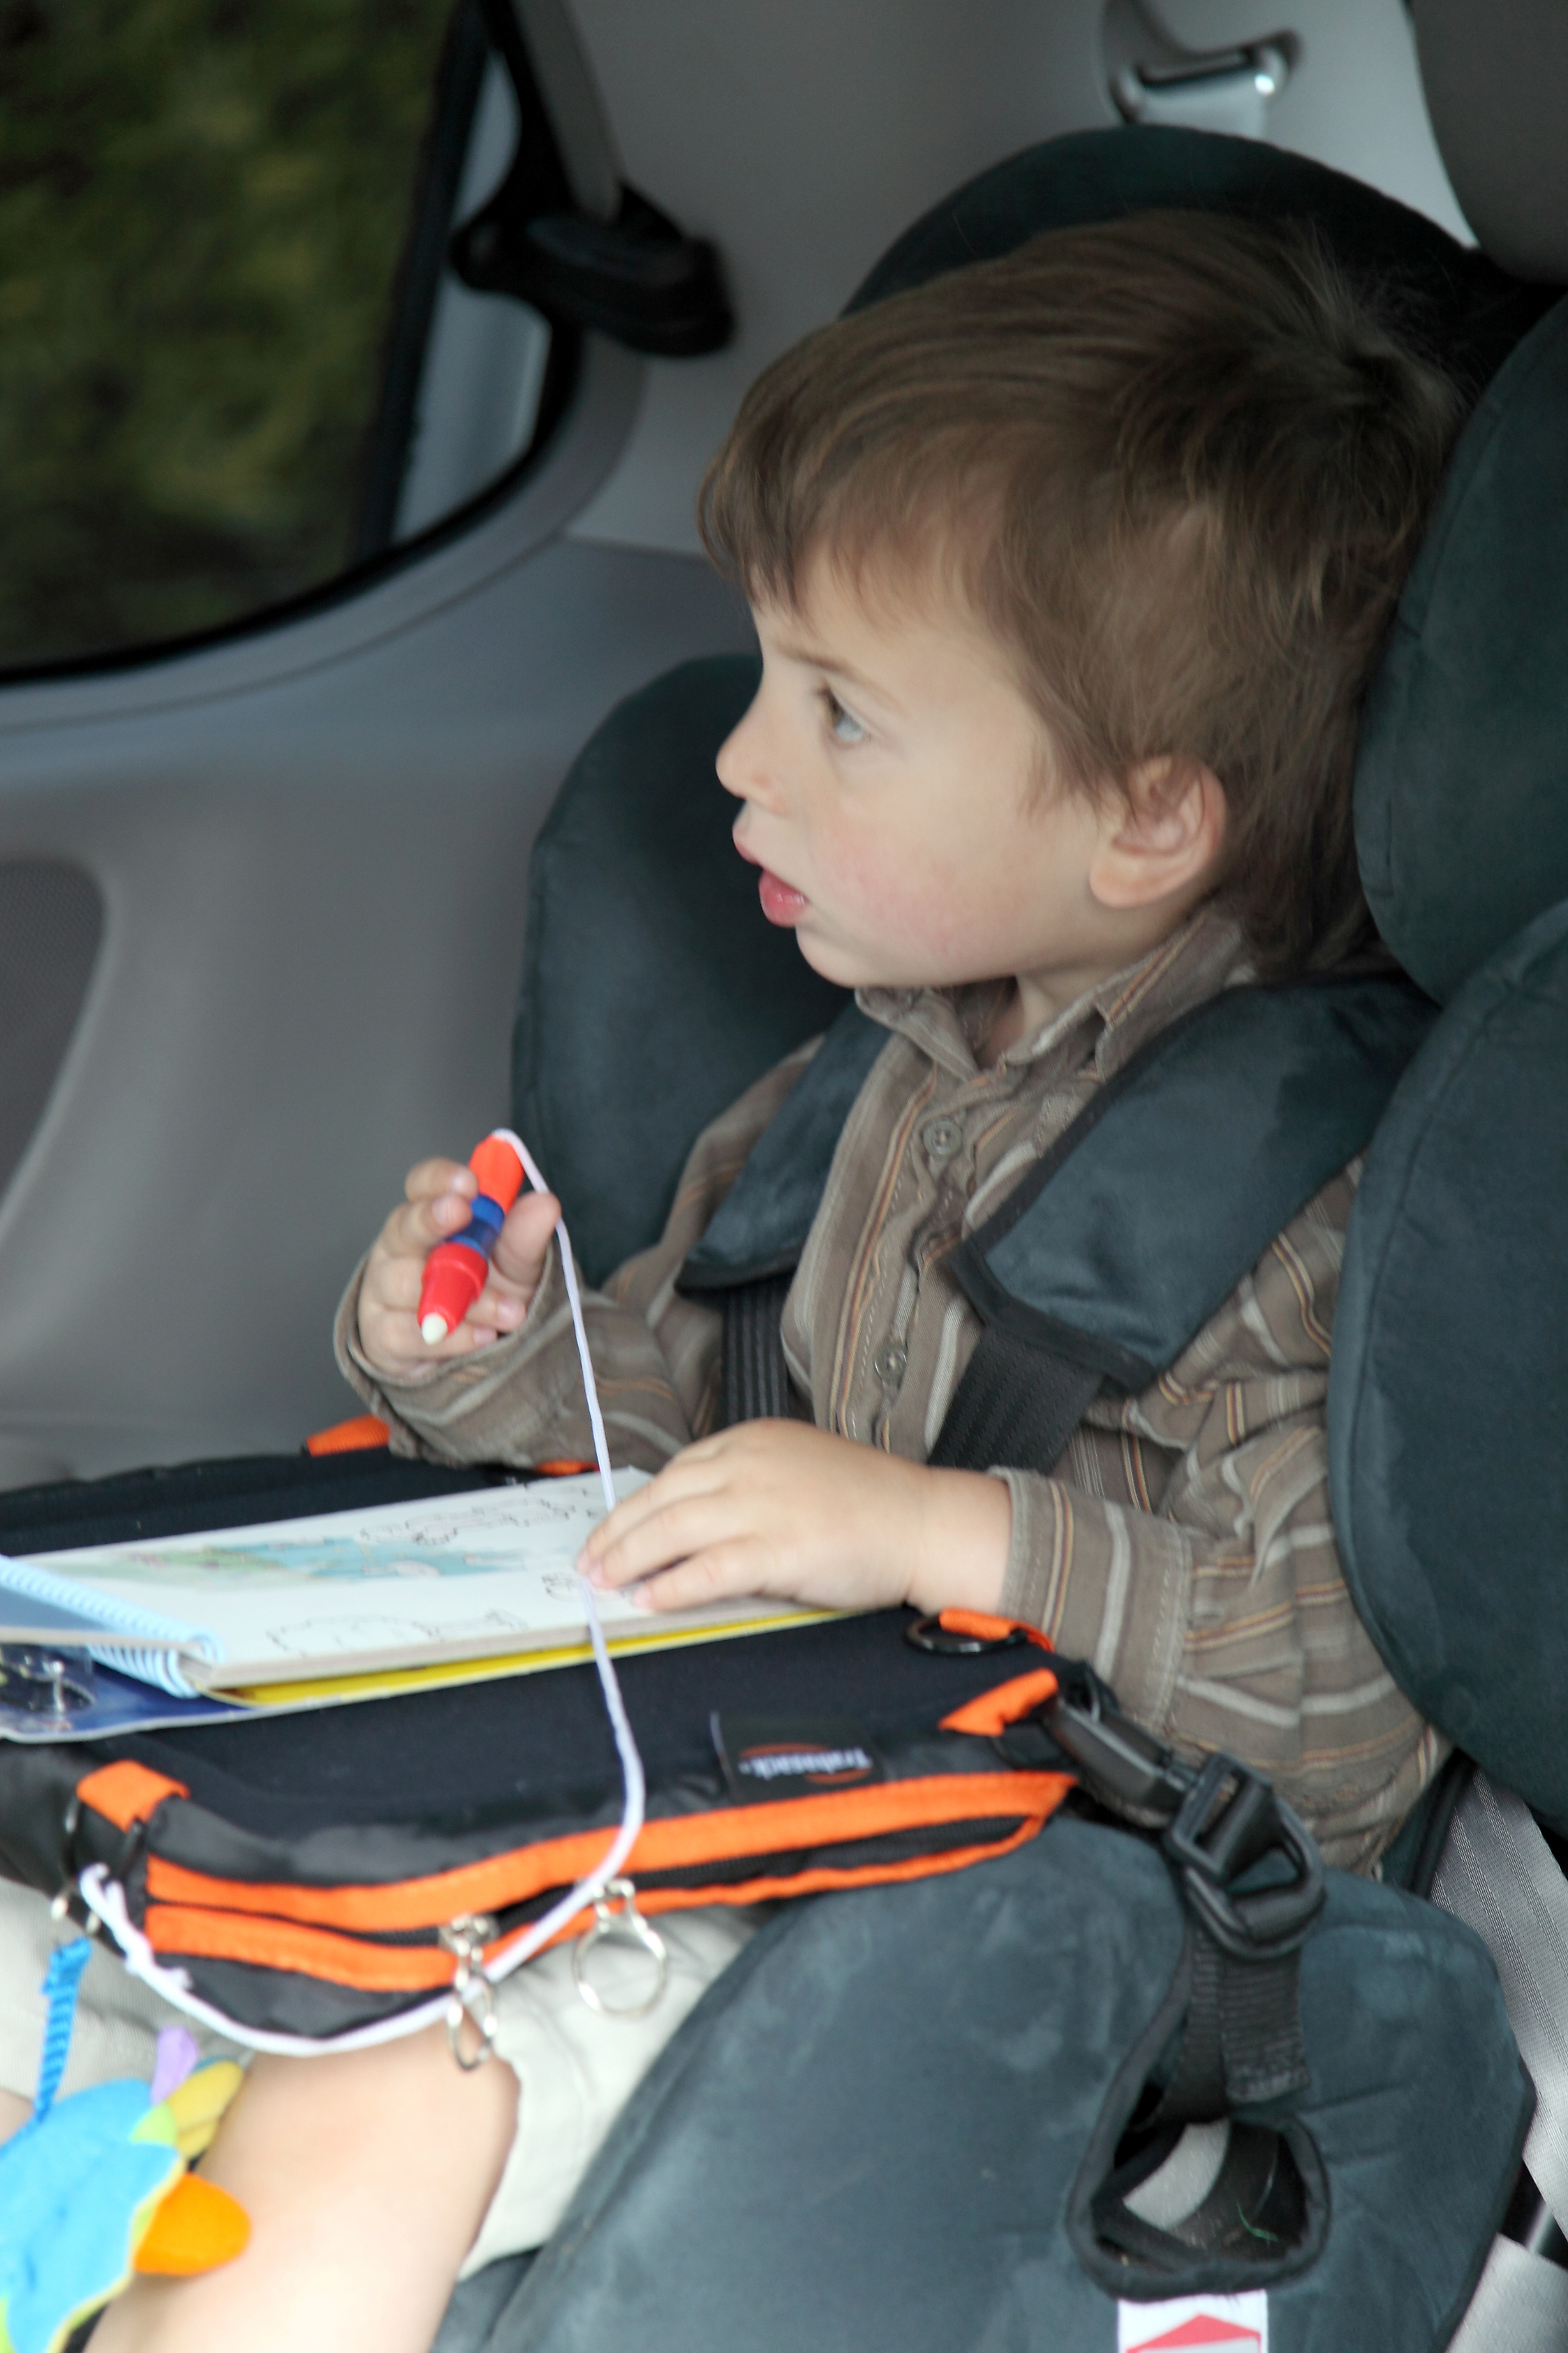 Universal Car Seat Tray - Trabasack - Lap Desk and Bag in One